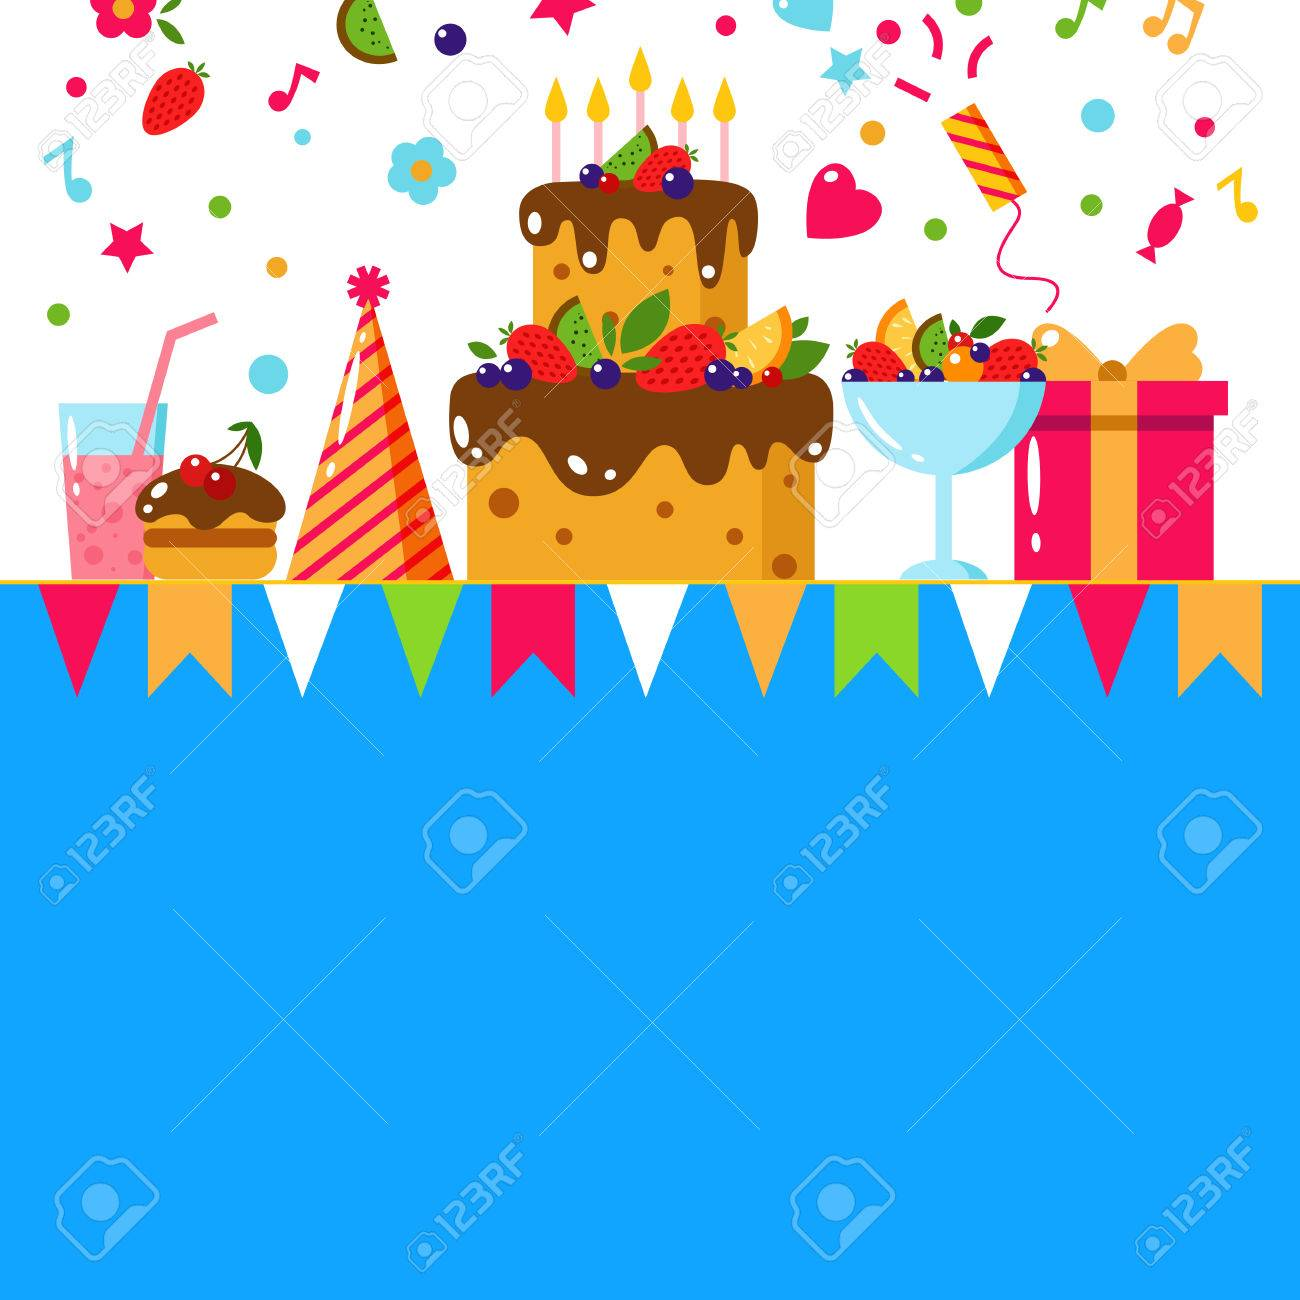 Happy Birthday Card Flat Vector Illustration Kids Party And Celebration Design Elements Cake